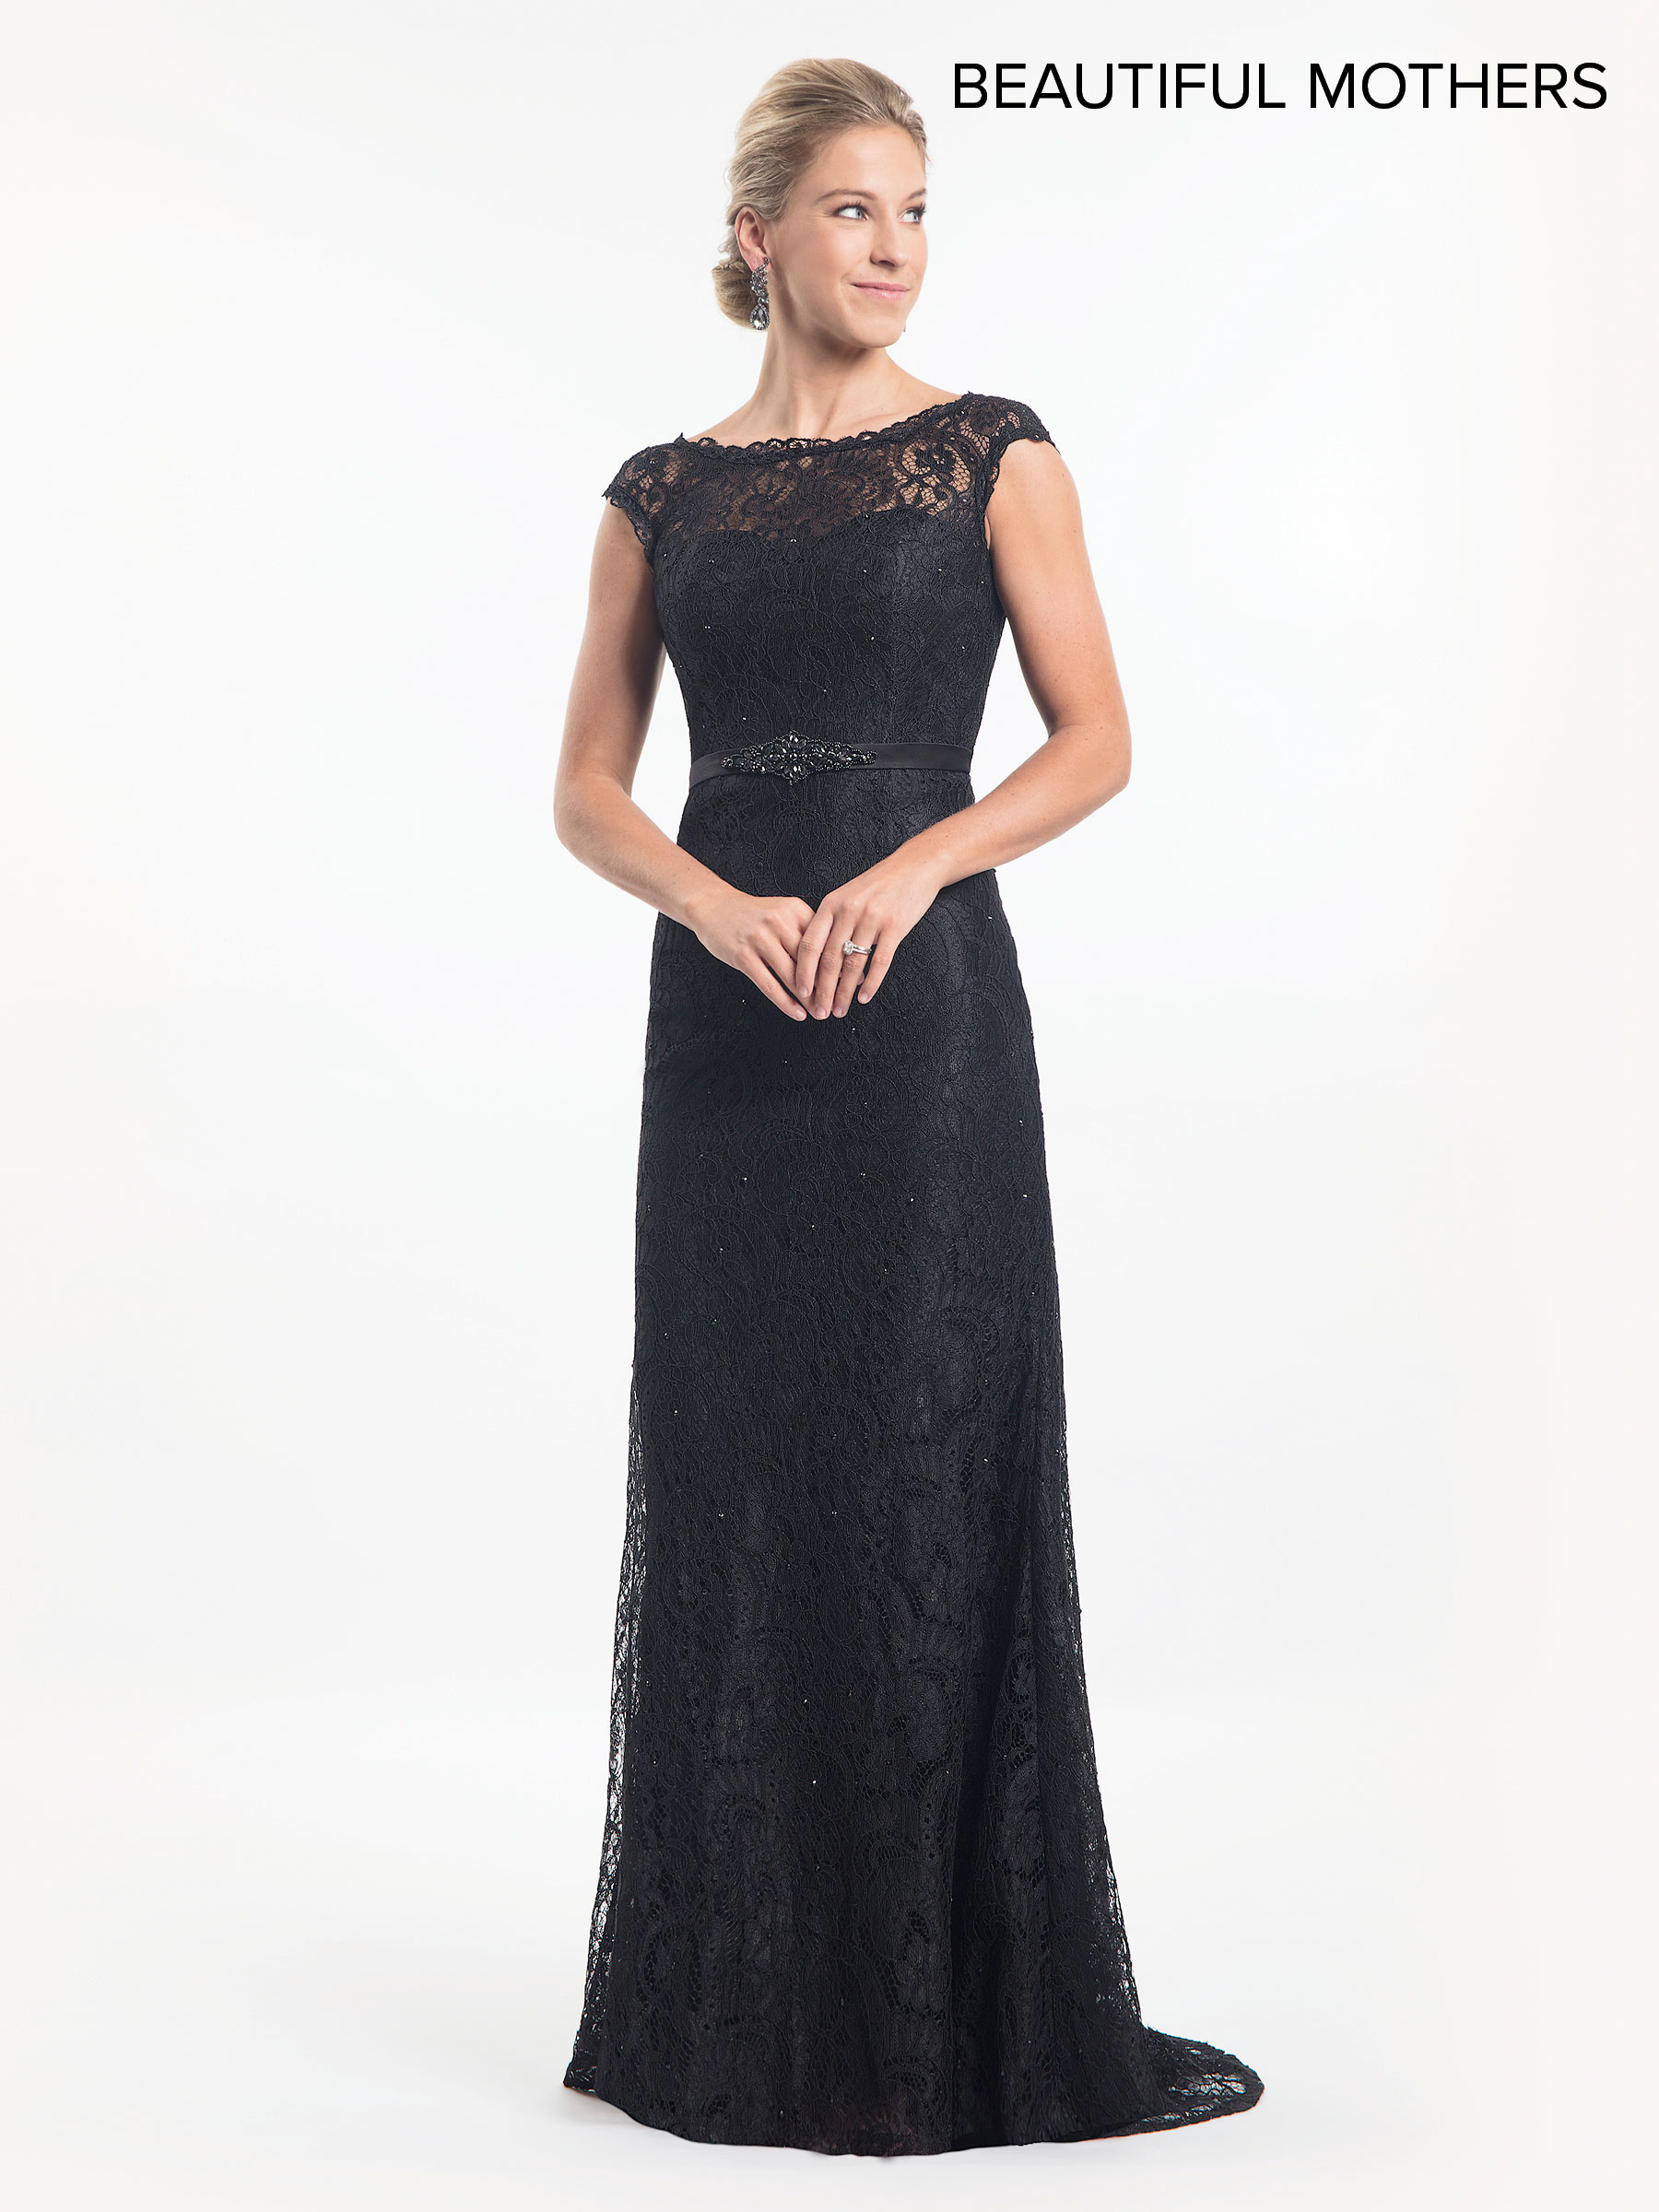 Mother Of The Bride Dresses | Beautiful Mothers | Style - MB8015